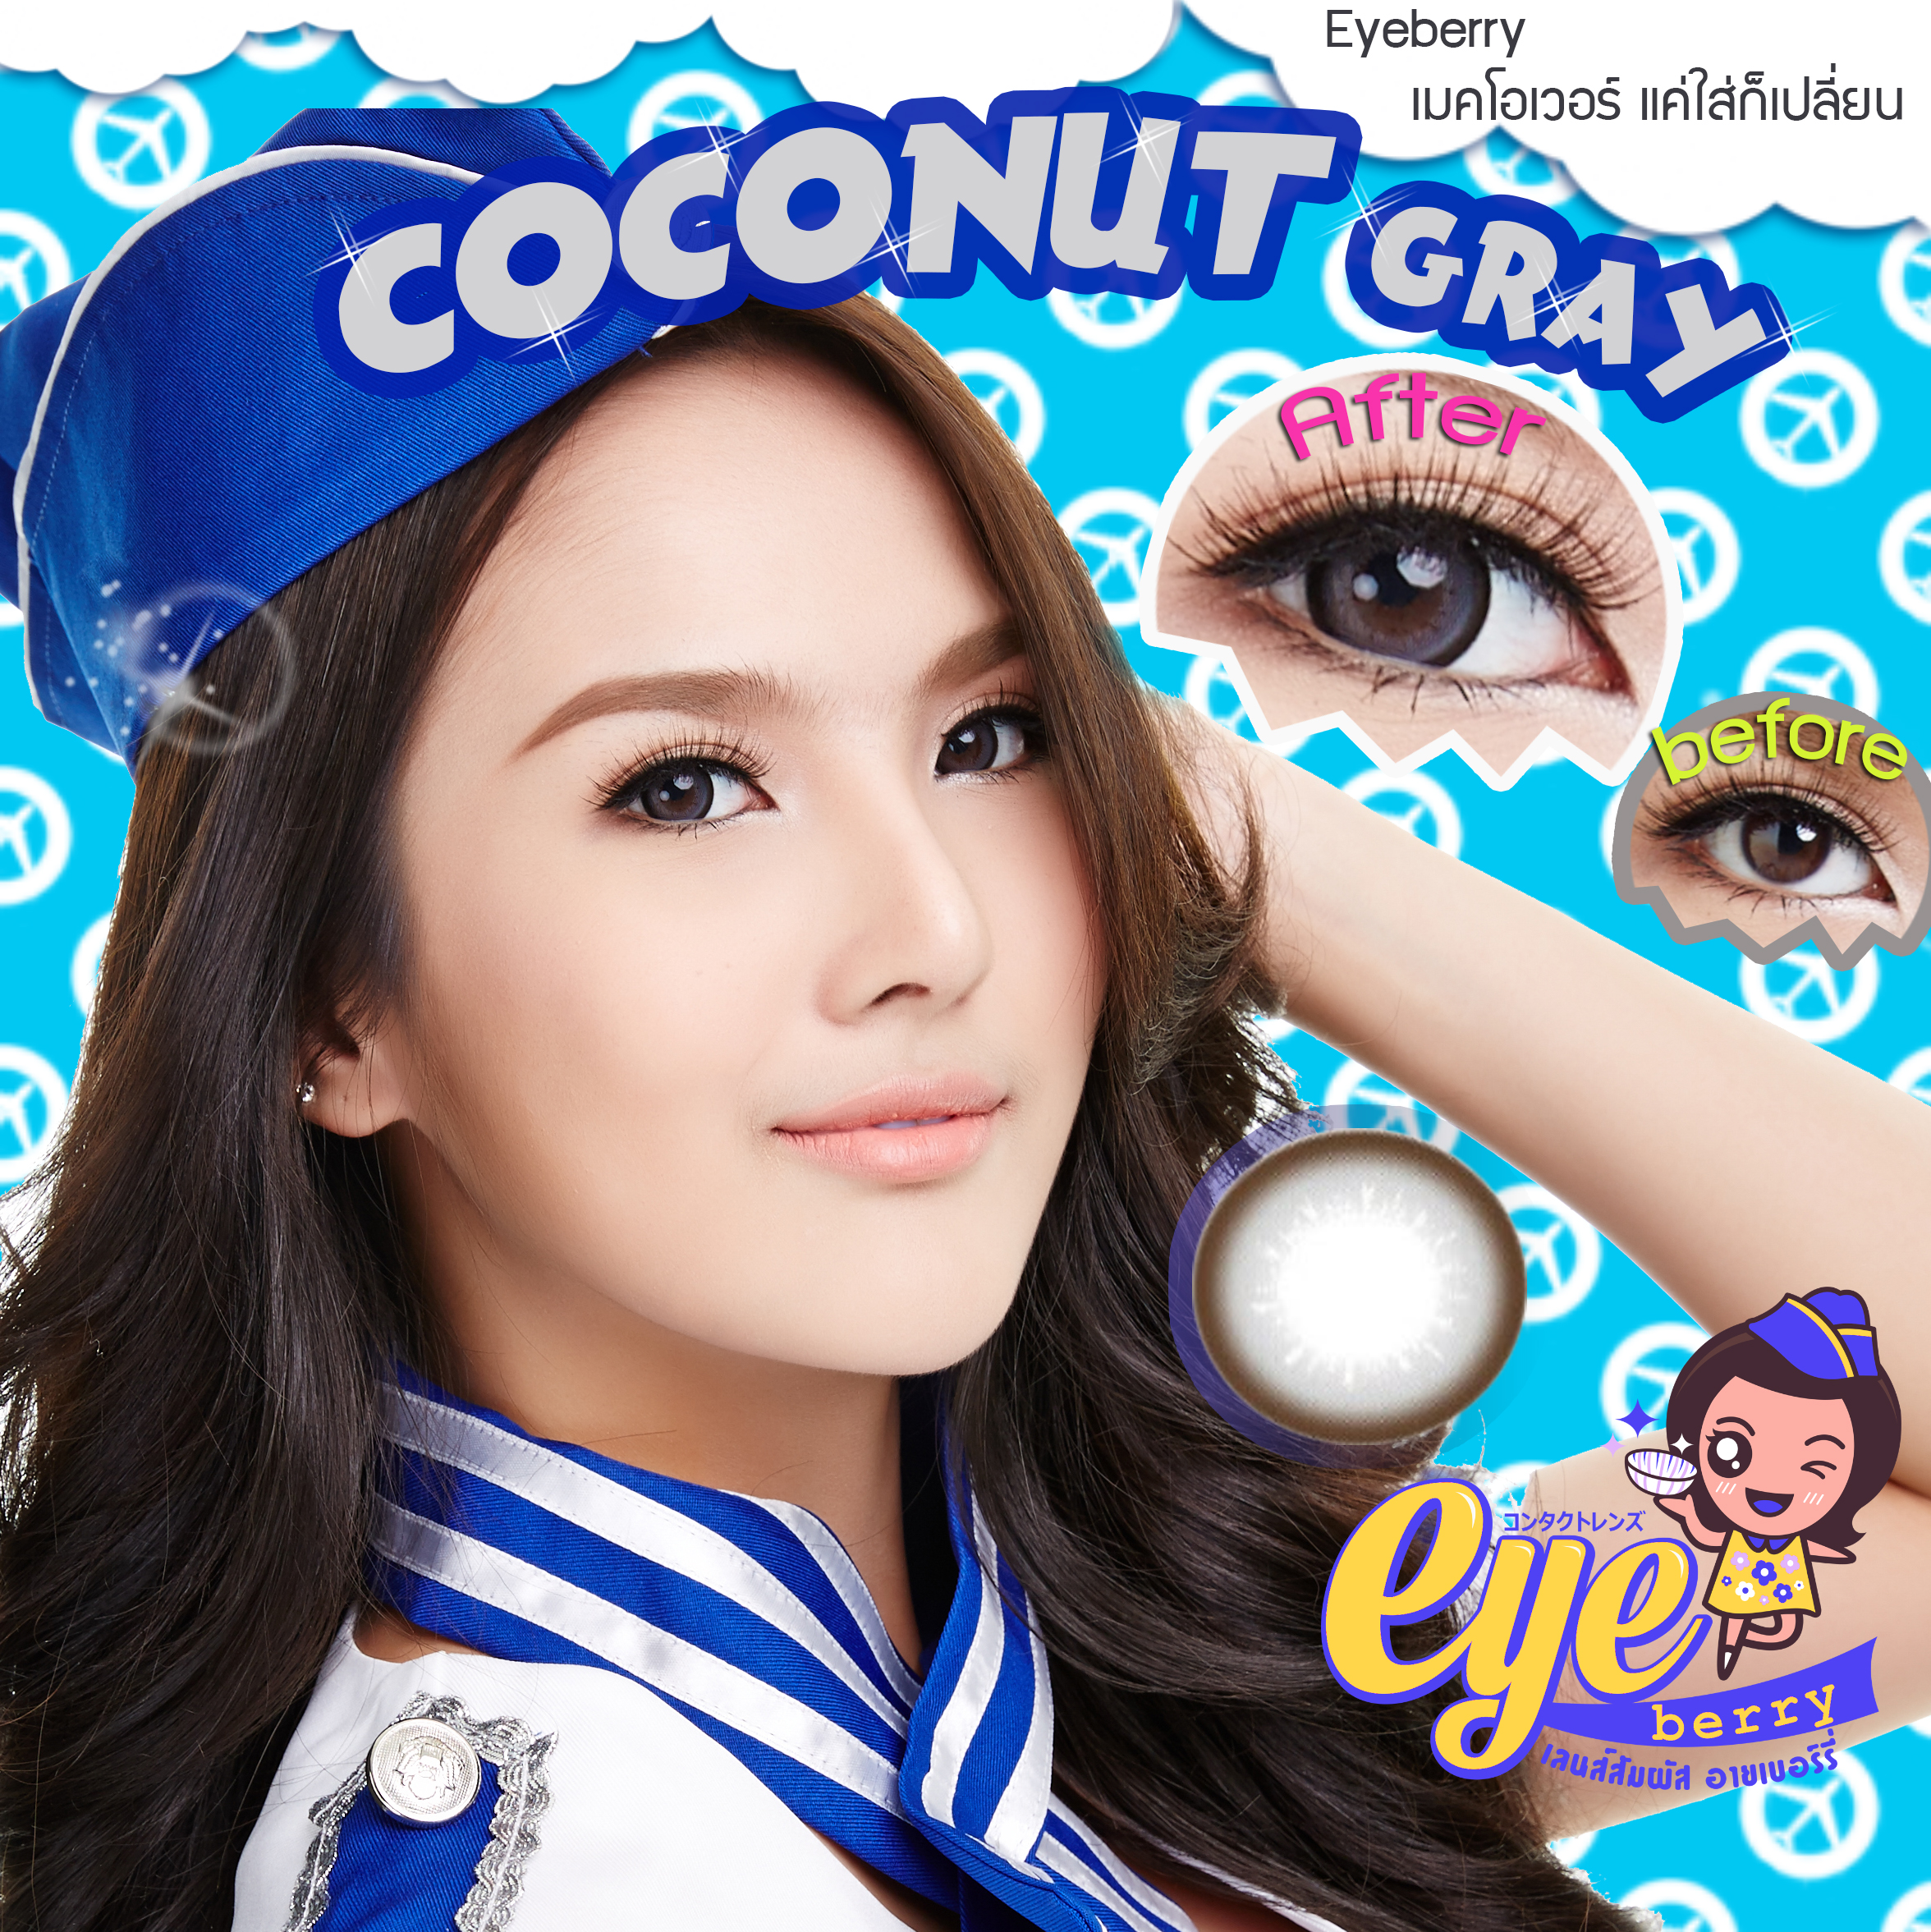 สั้น/power -325 COCONUT GRAY EYEBERRYLENS